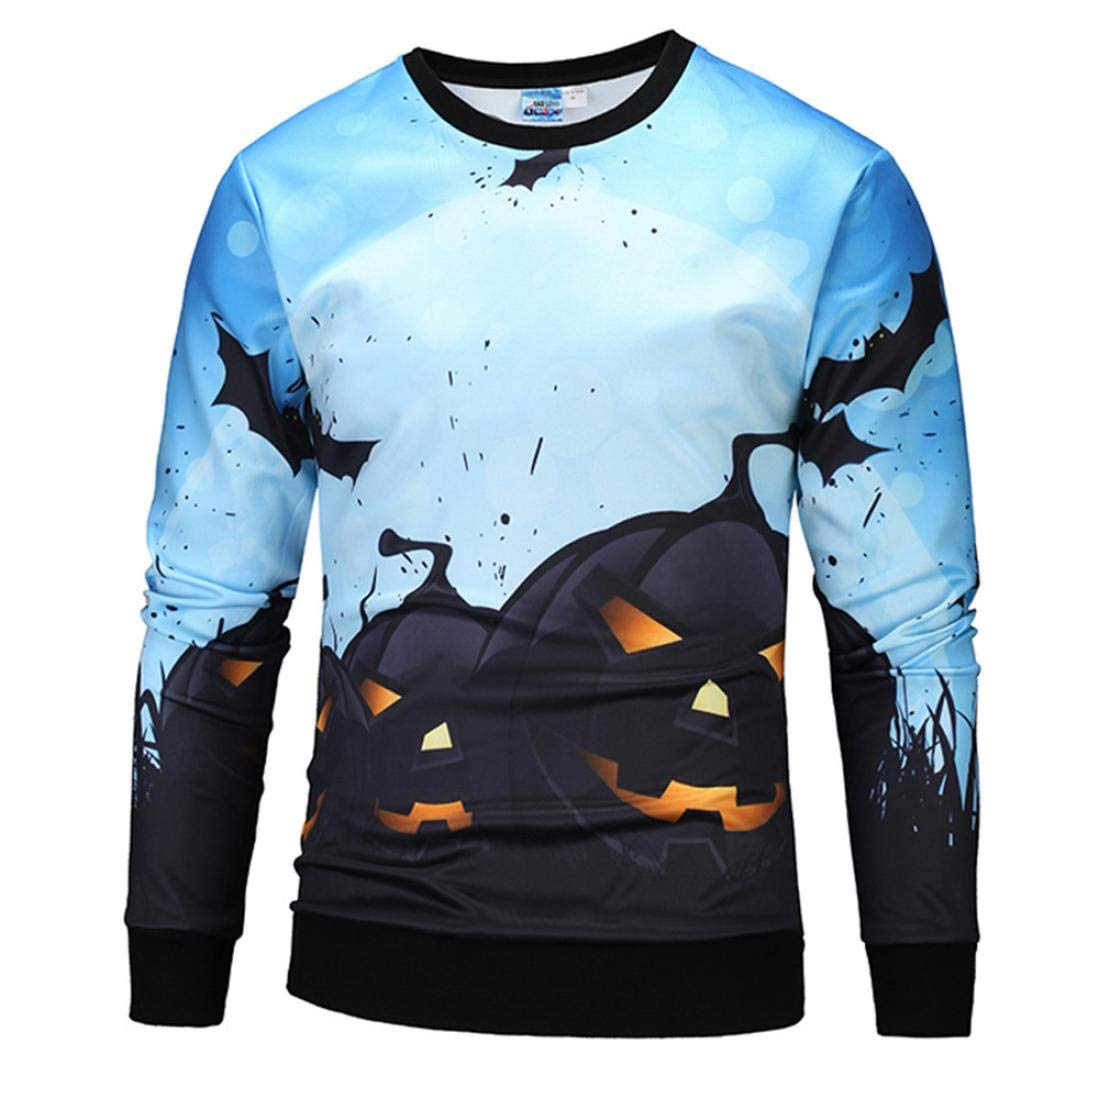 kaifongfu Men Scary Halloween Tops with Pumpkin 14D Print Long Sleeve Party Hoodie Blouse(Blue,S) by kaifongfu-mens clothes (Image #1)